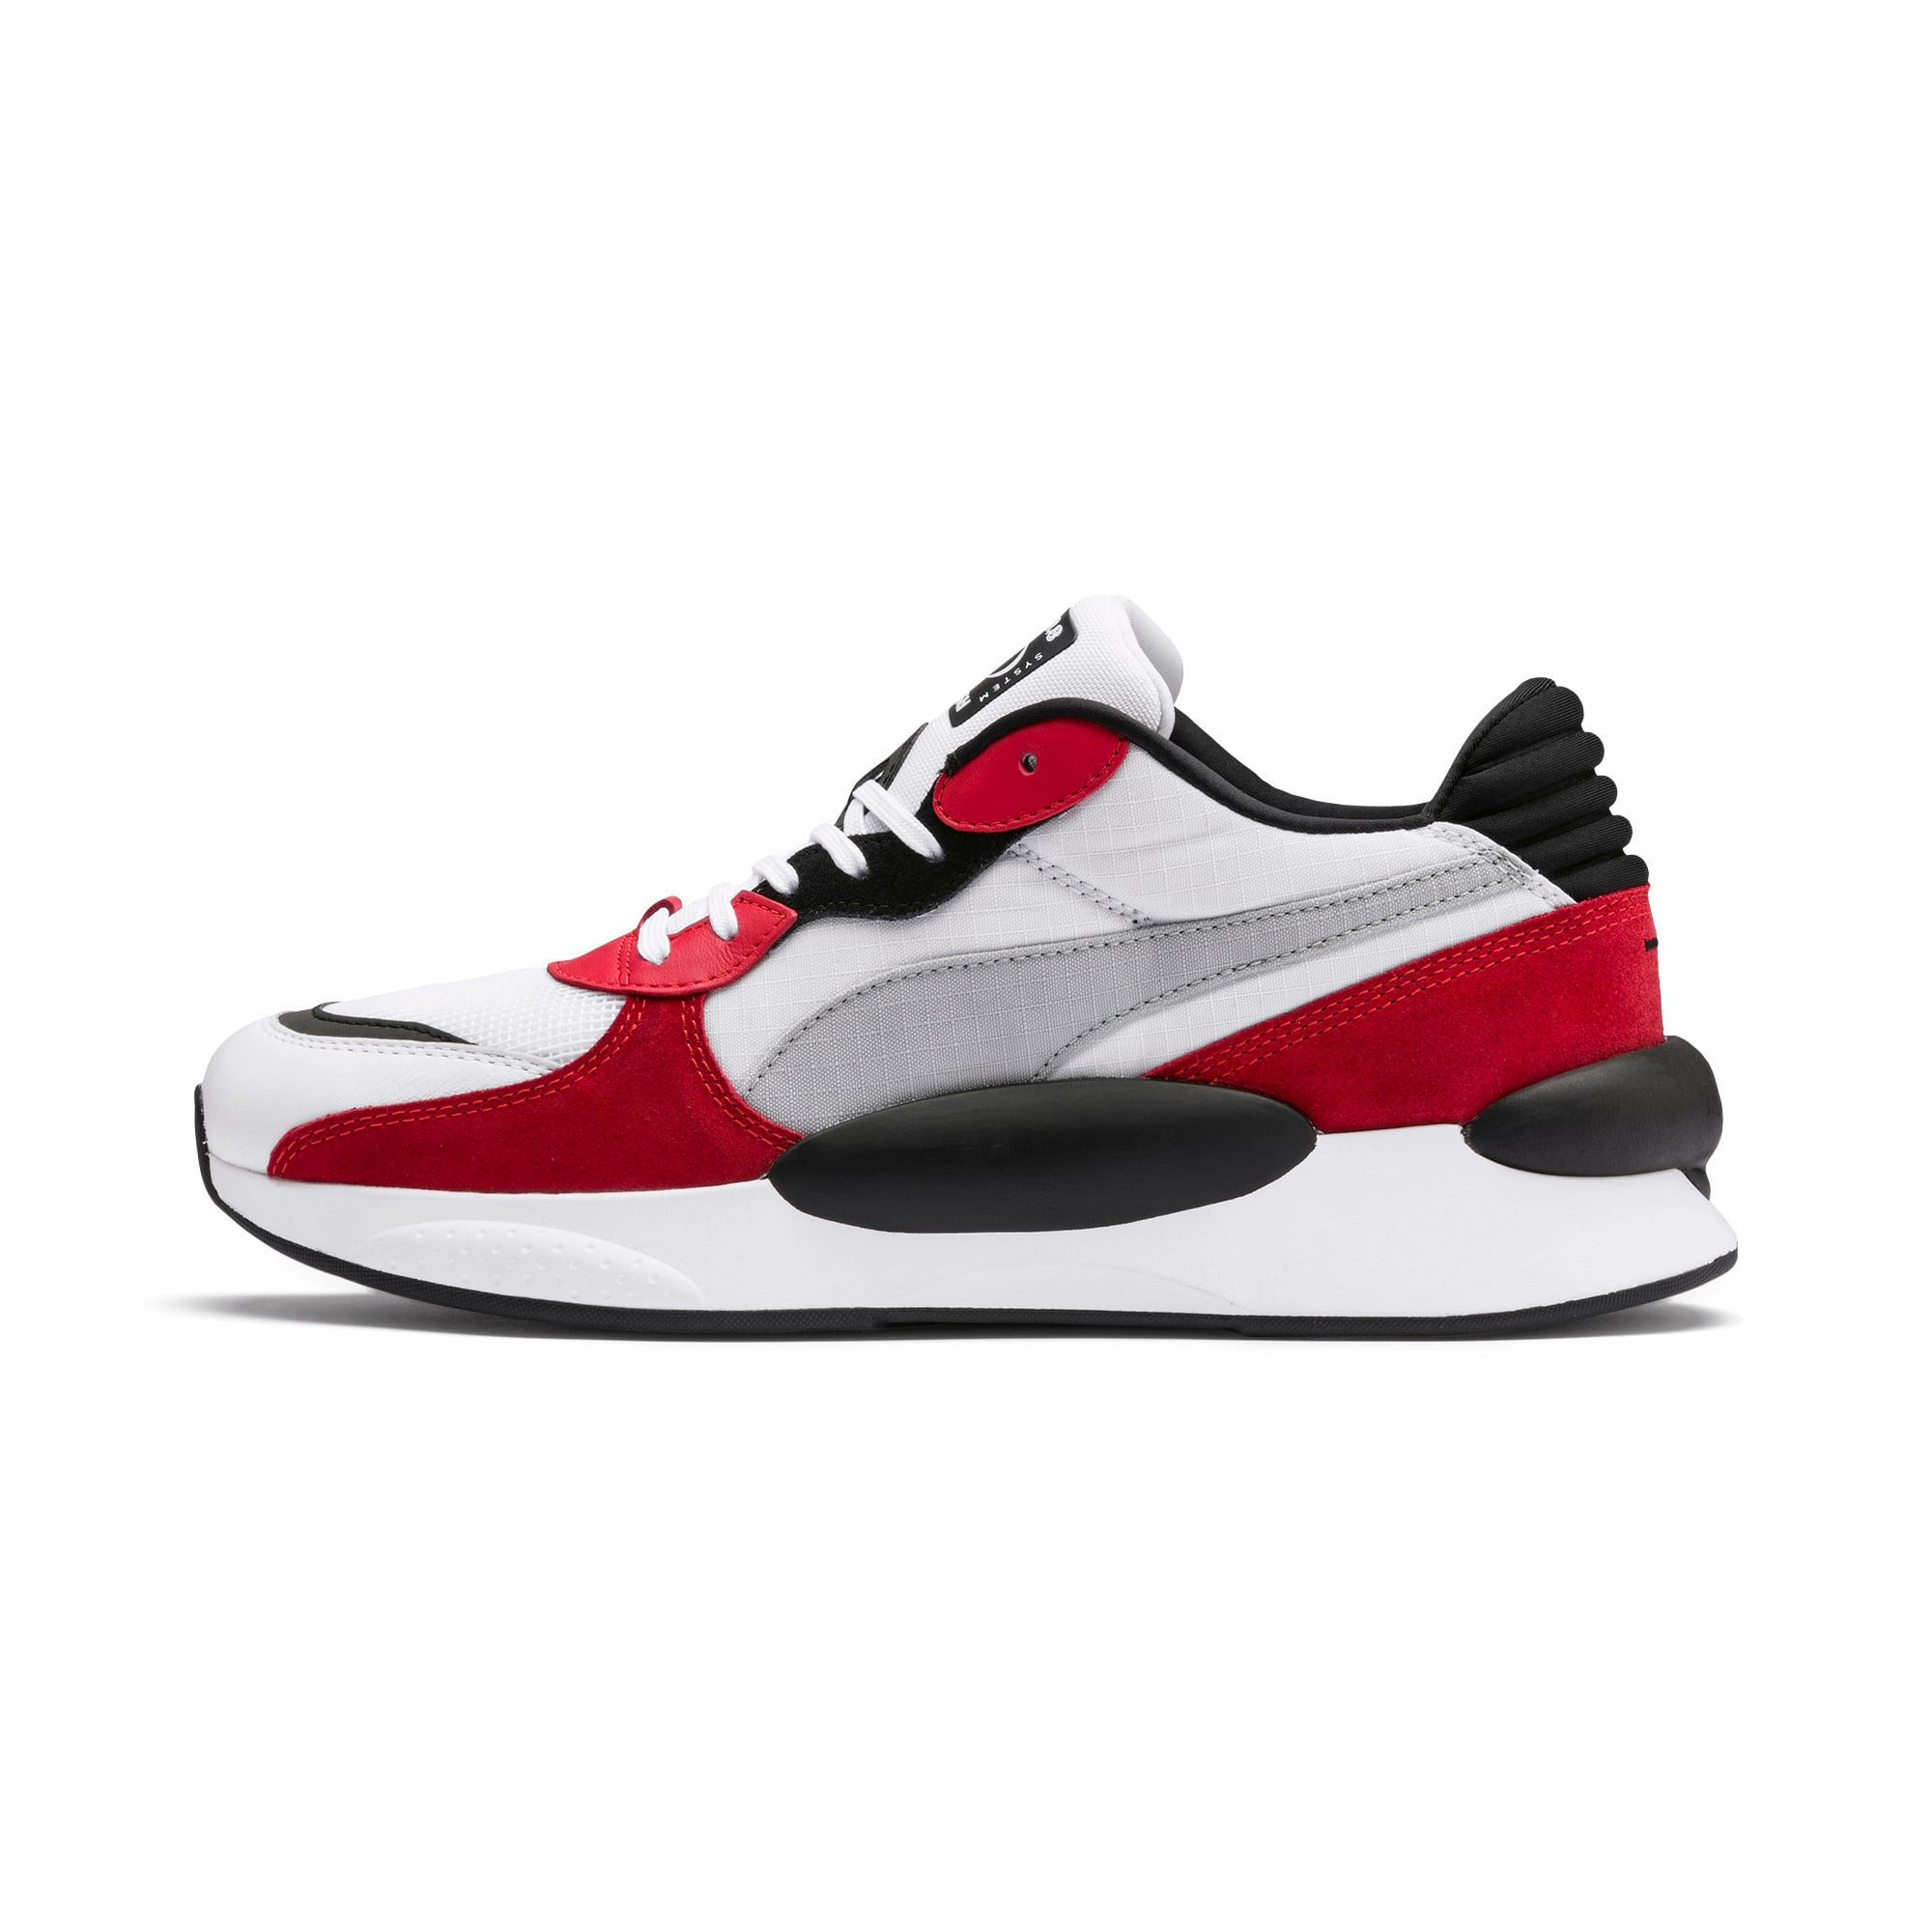 Thumbnail 1 of RS 9.8 Space Trainers, Puma White-High Risk Red, medium-IND